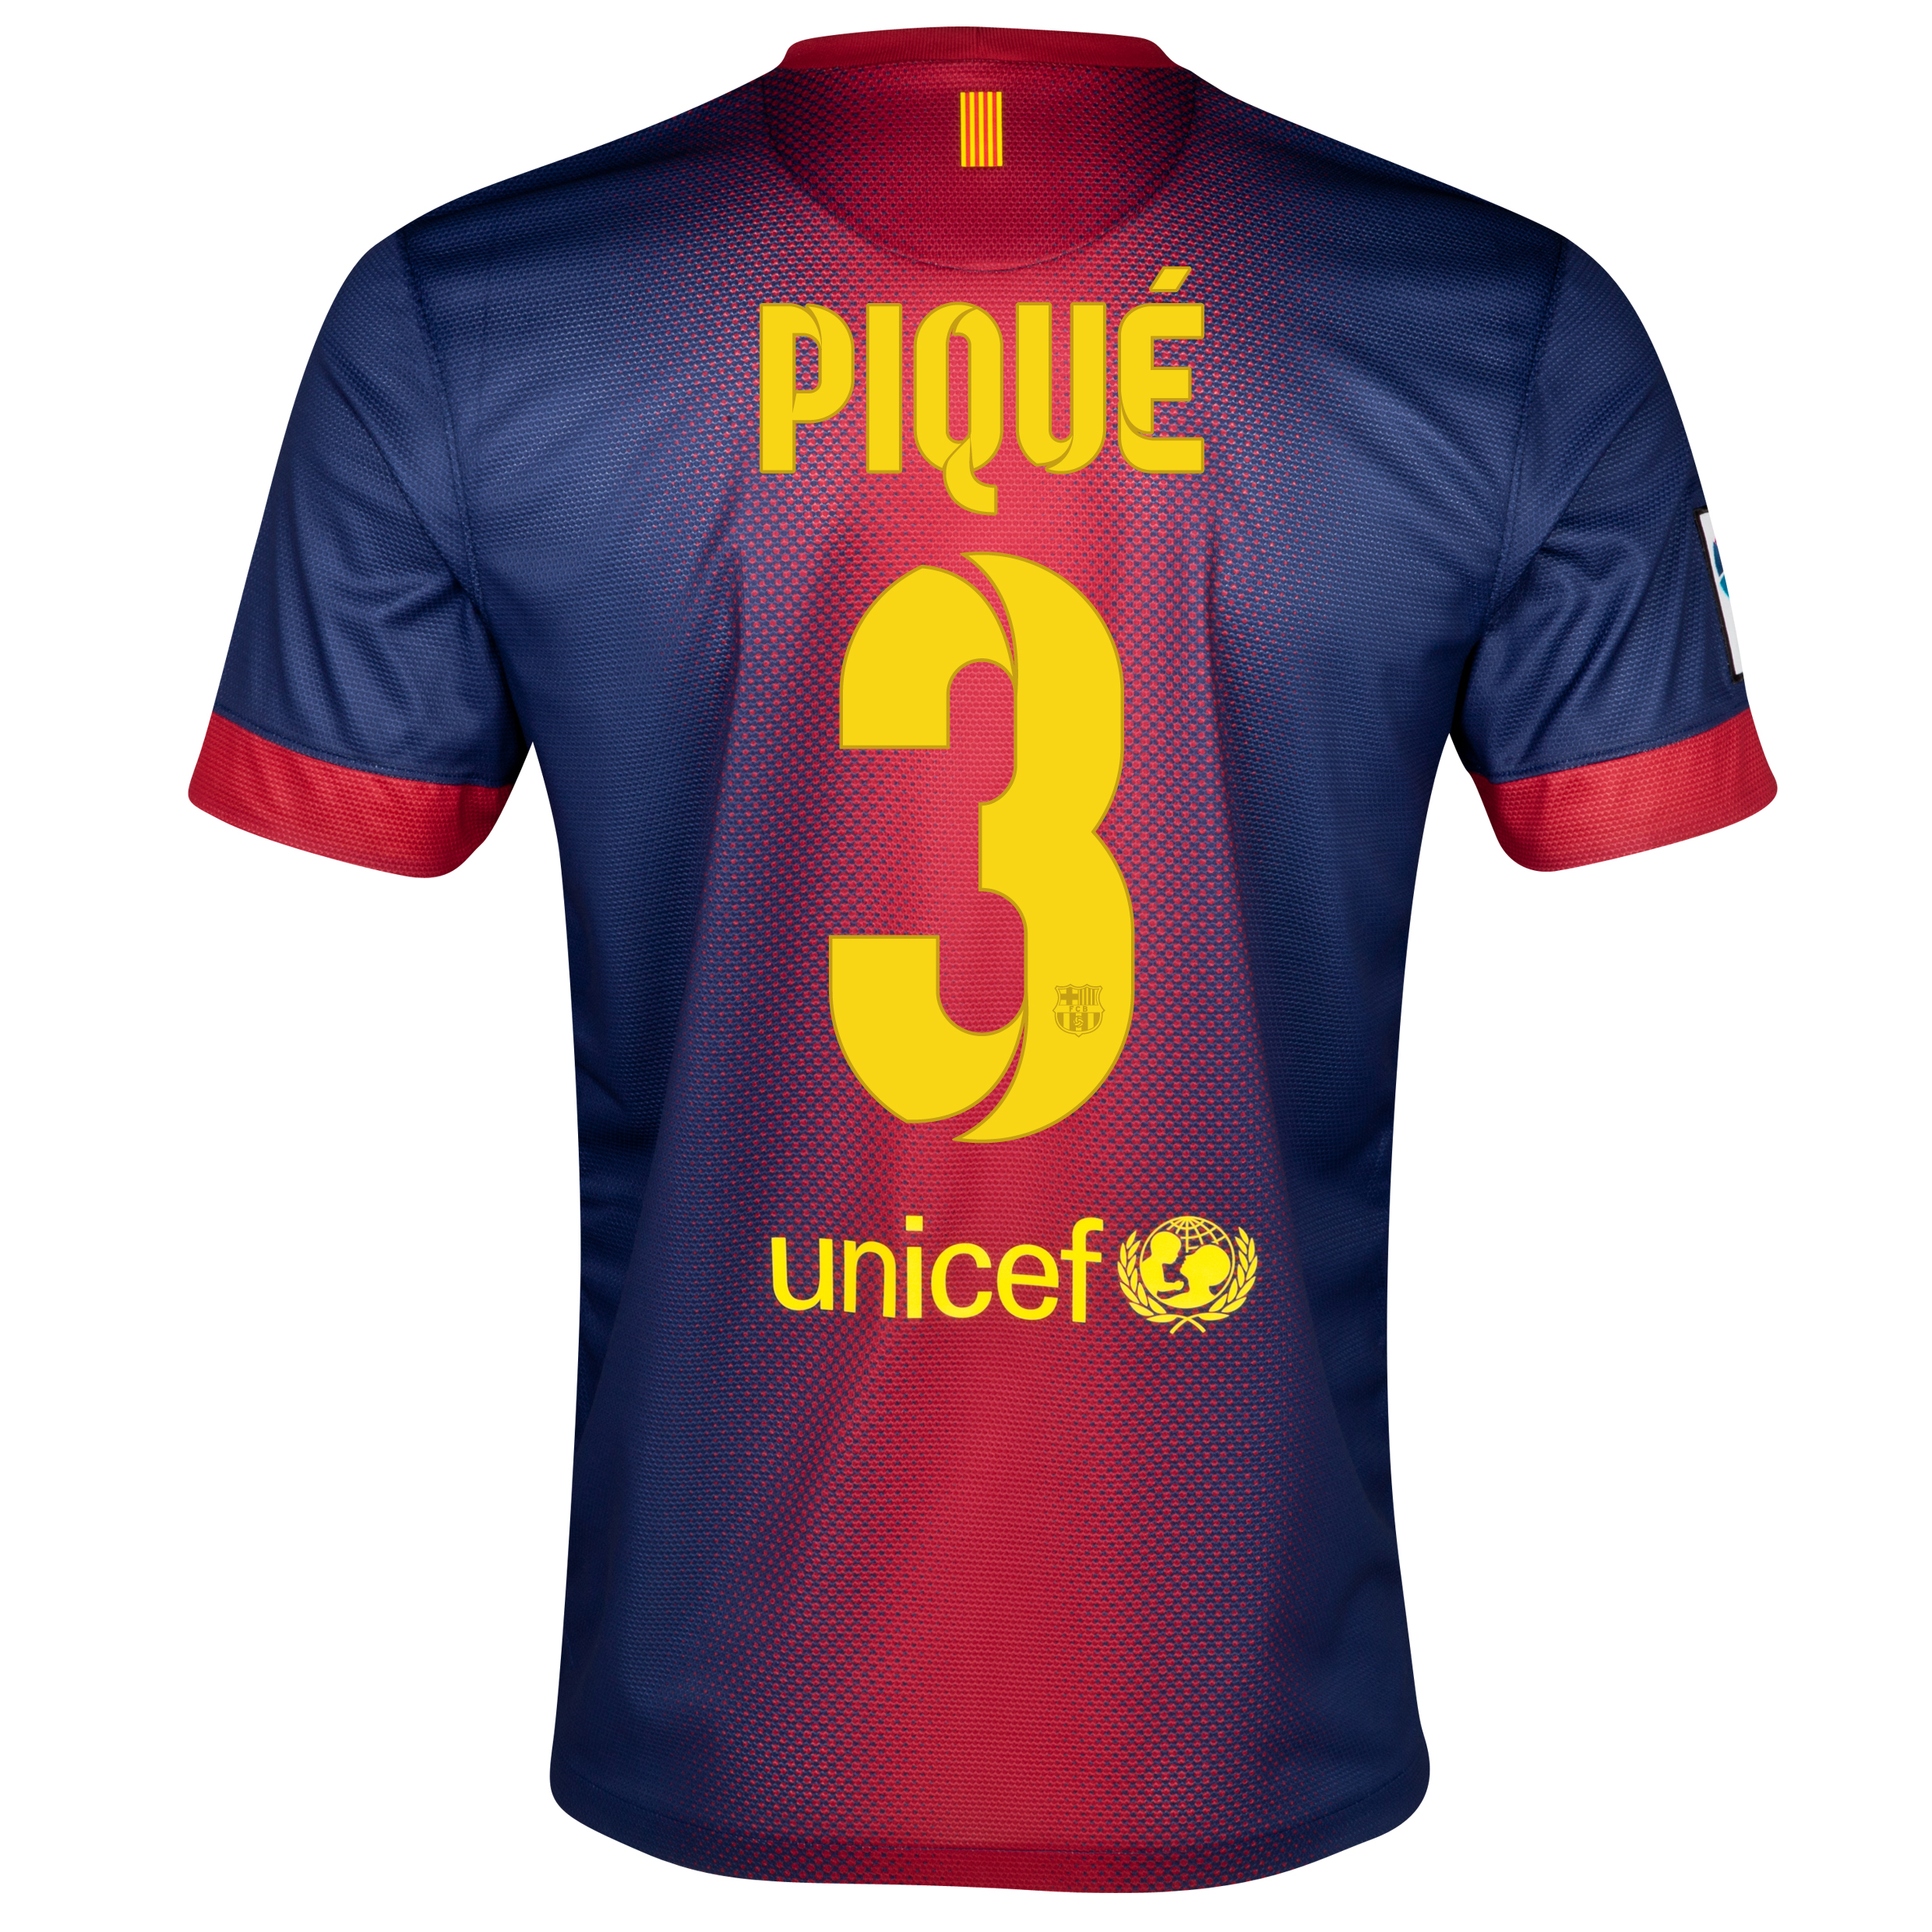 Barcelona Home Shirt 2012/13 with Pique 3 printing